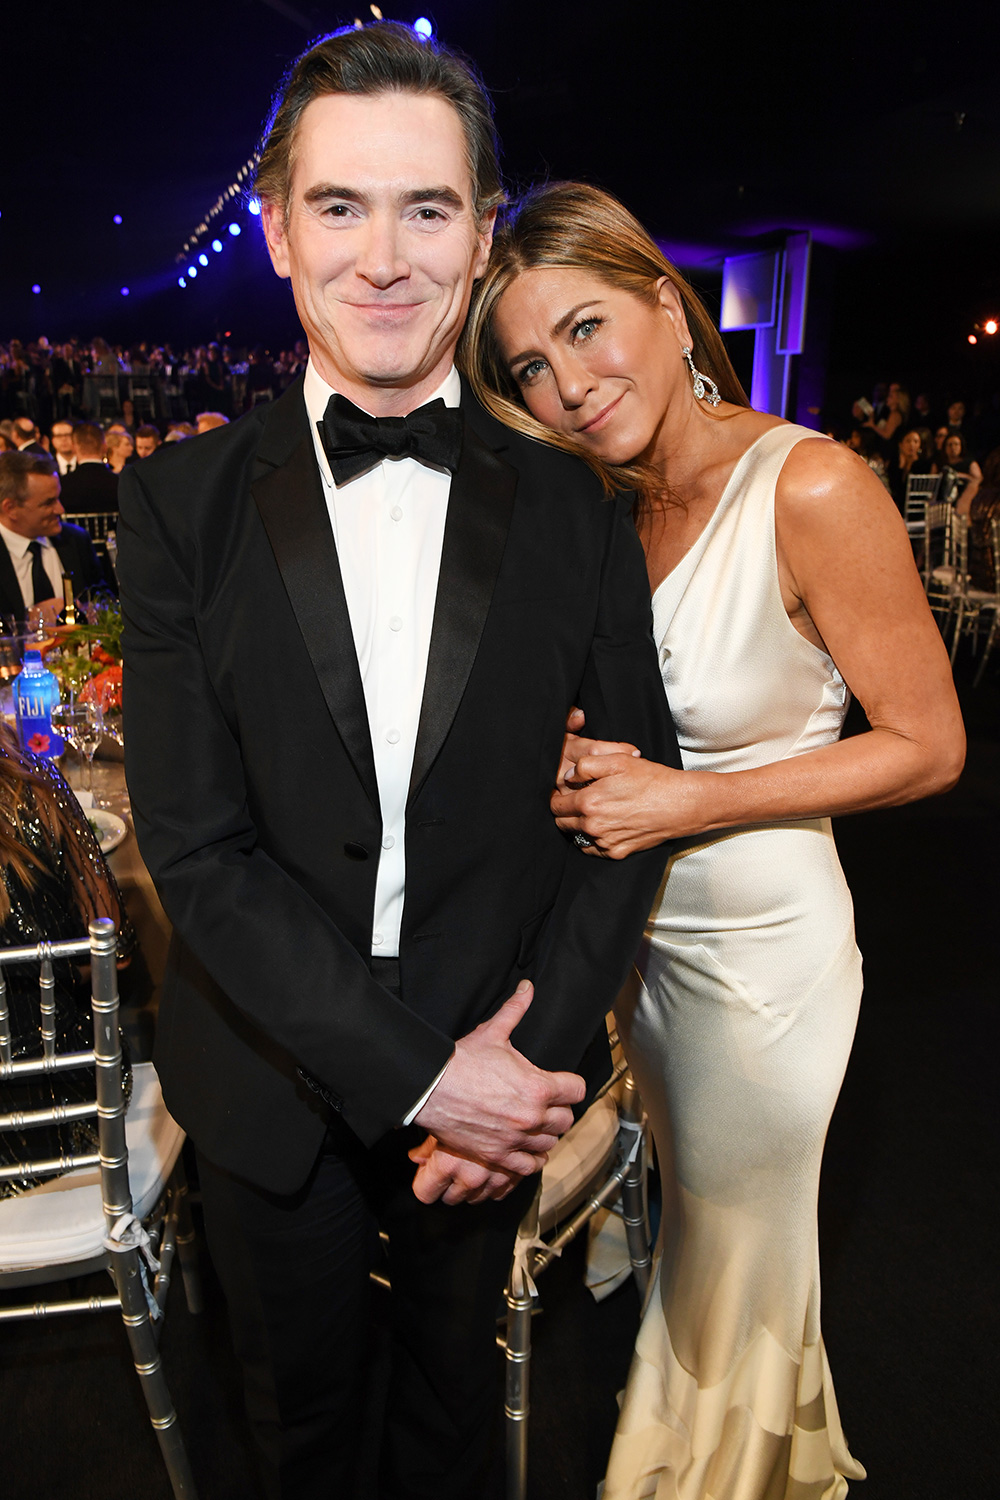 Billy Crudup and Jennifer Aniston attend the 26th Annual Screen Actors Guild Awards at The Shrine Auditorium on January 19, 2020 in Los Angeles, California